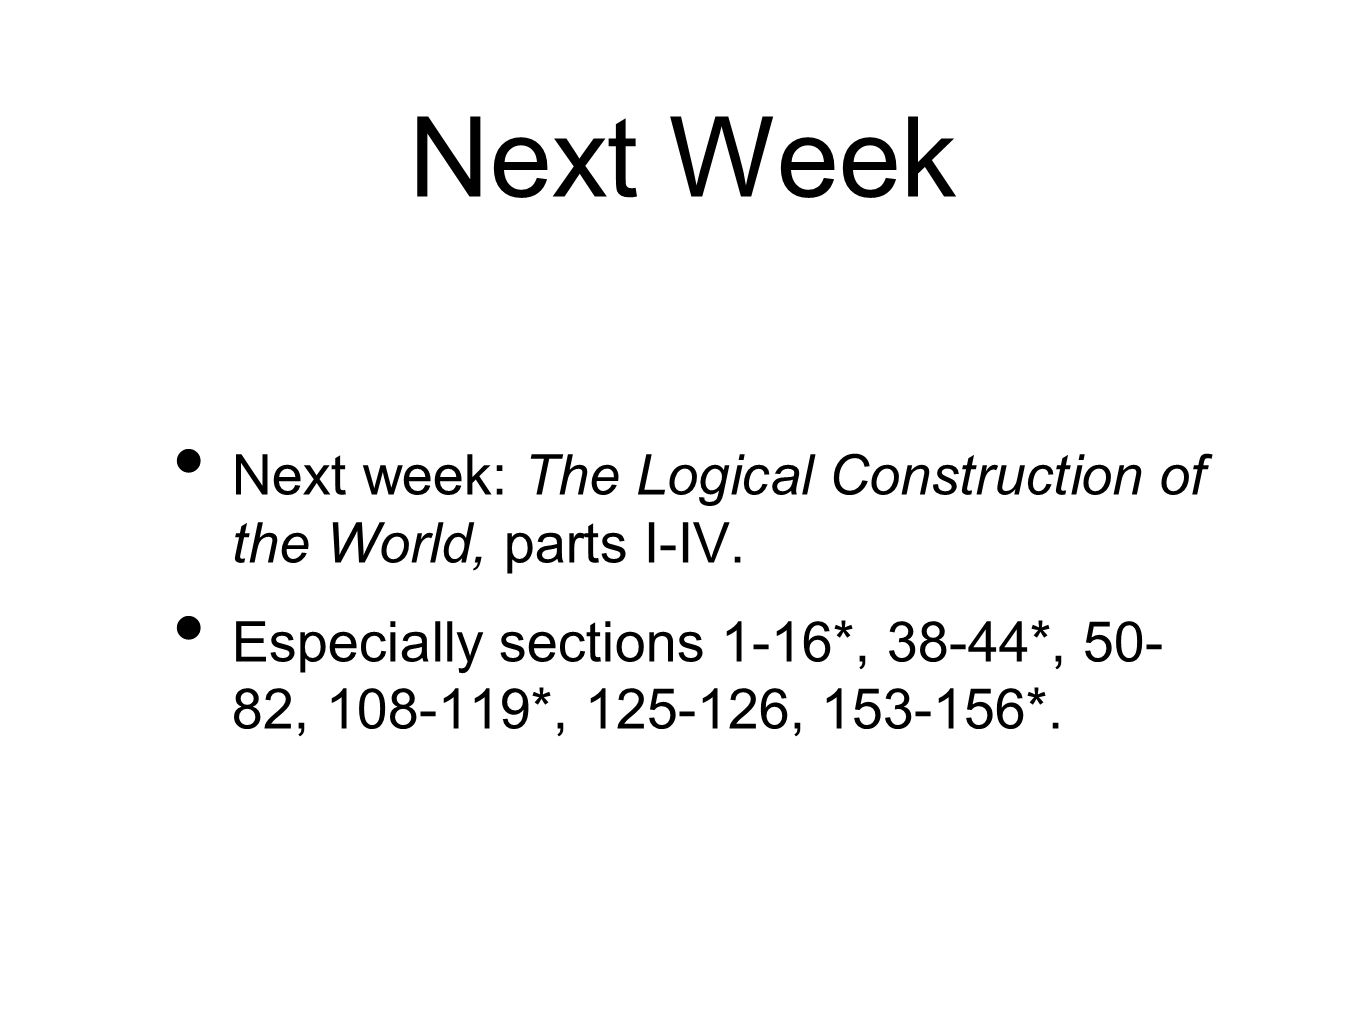 Next Week Next week: The Logical Construction of the World, parts I-IV. Especially sections 1-16*, 38-44*, 50- 82, 108-119*, 125-126, 153-156*.